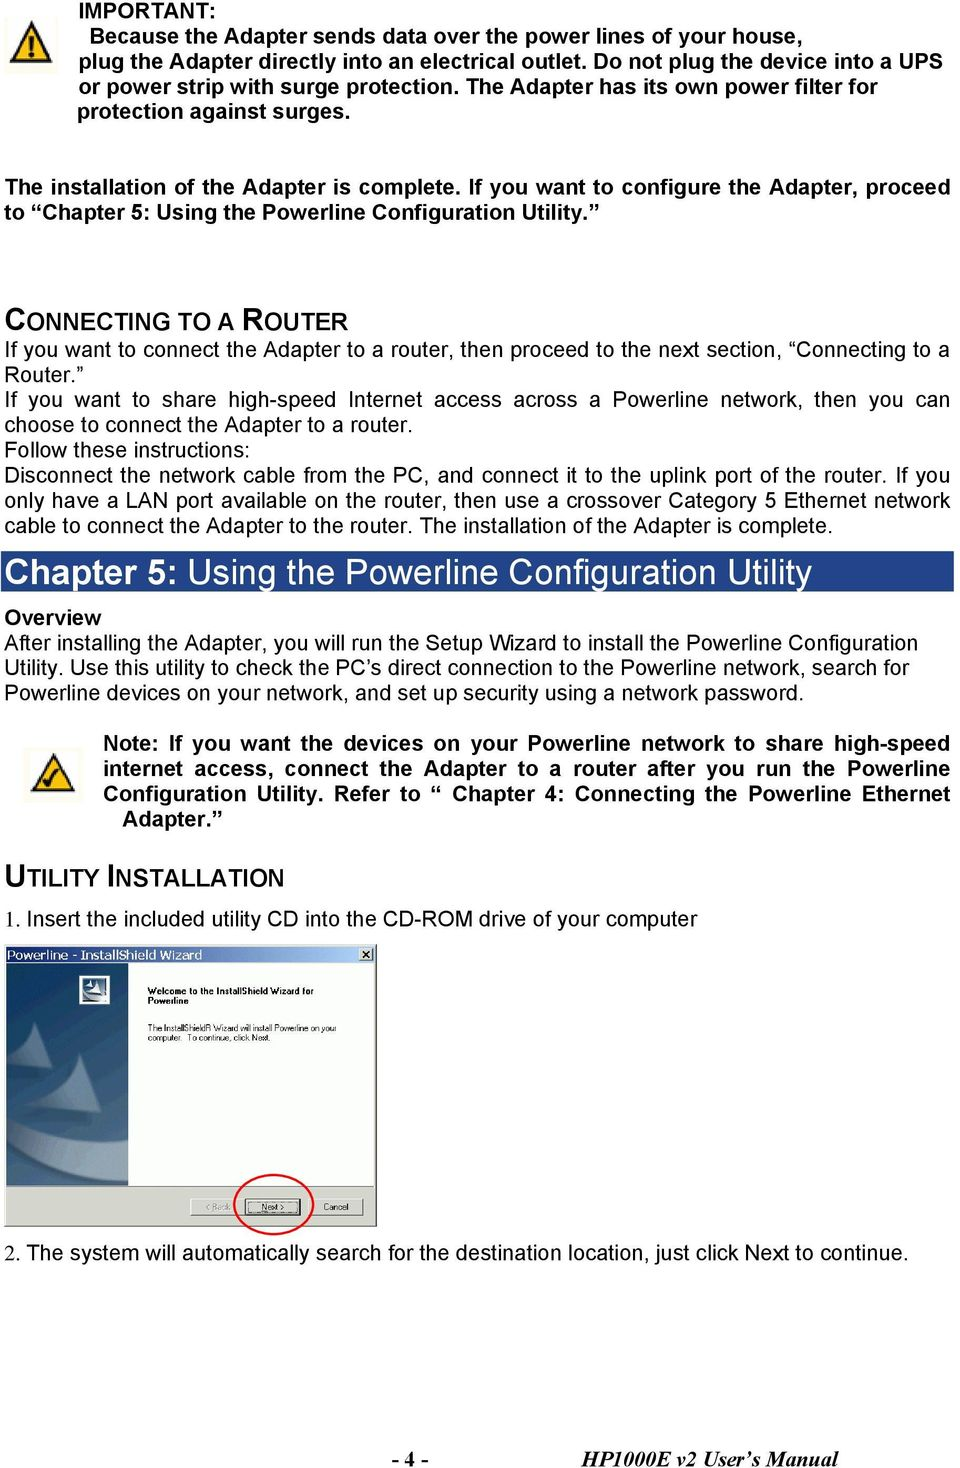 If you want to configure the Adapter, proceed to Chapter 5: Using the Powerline Configuration Utility.